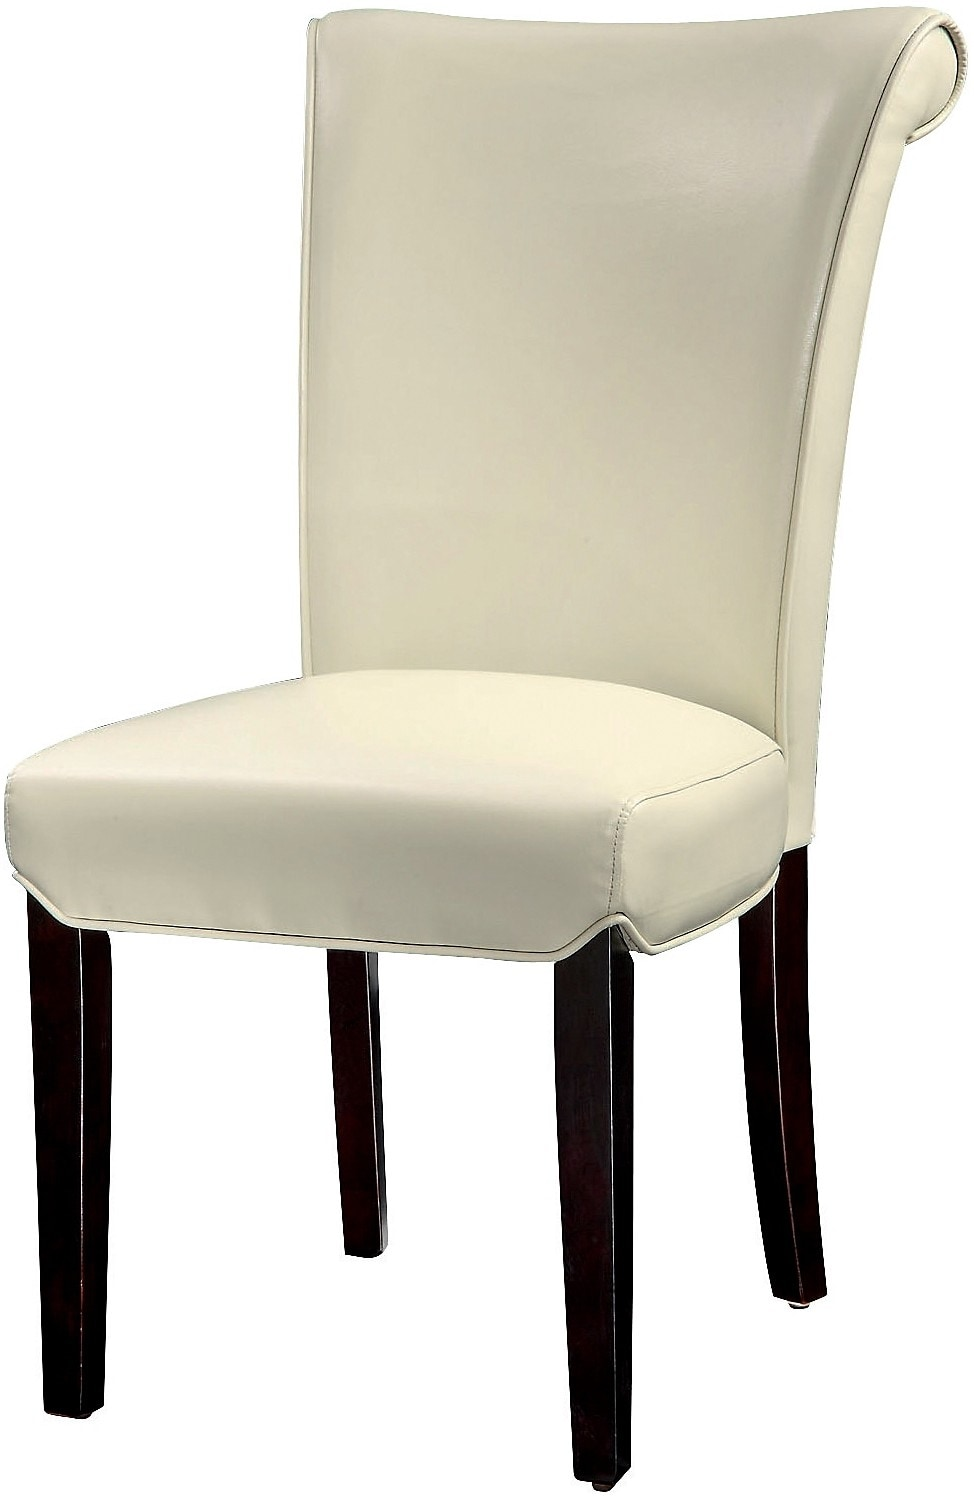 Dining Room Furniture - Brogan Dining Chair - Ivory